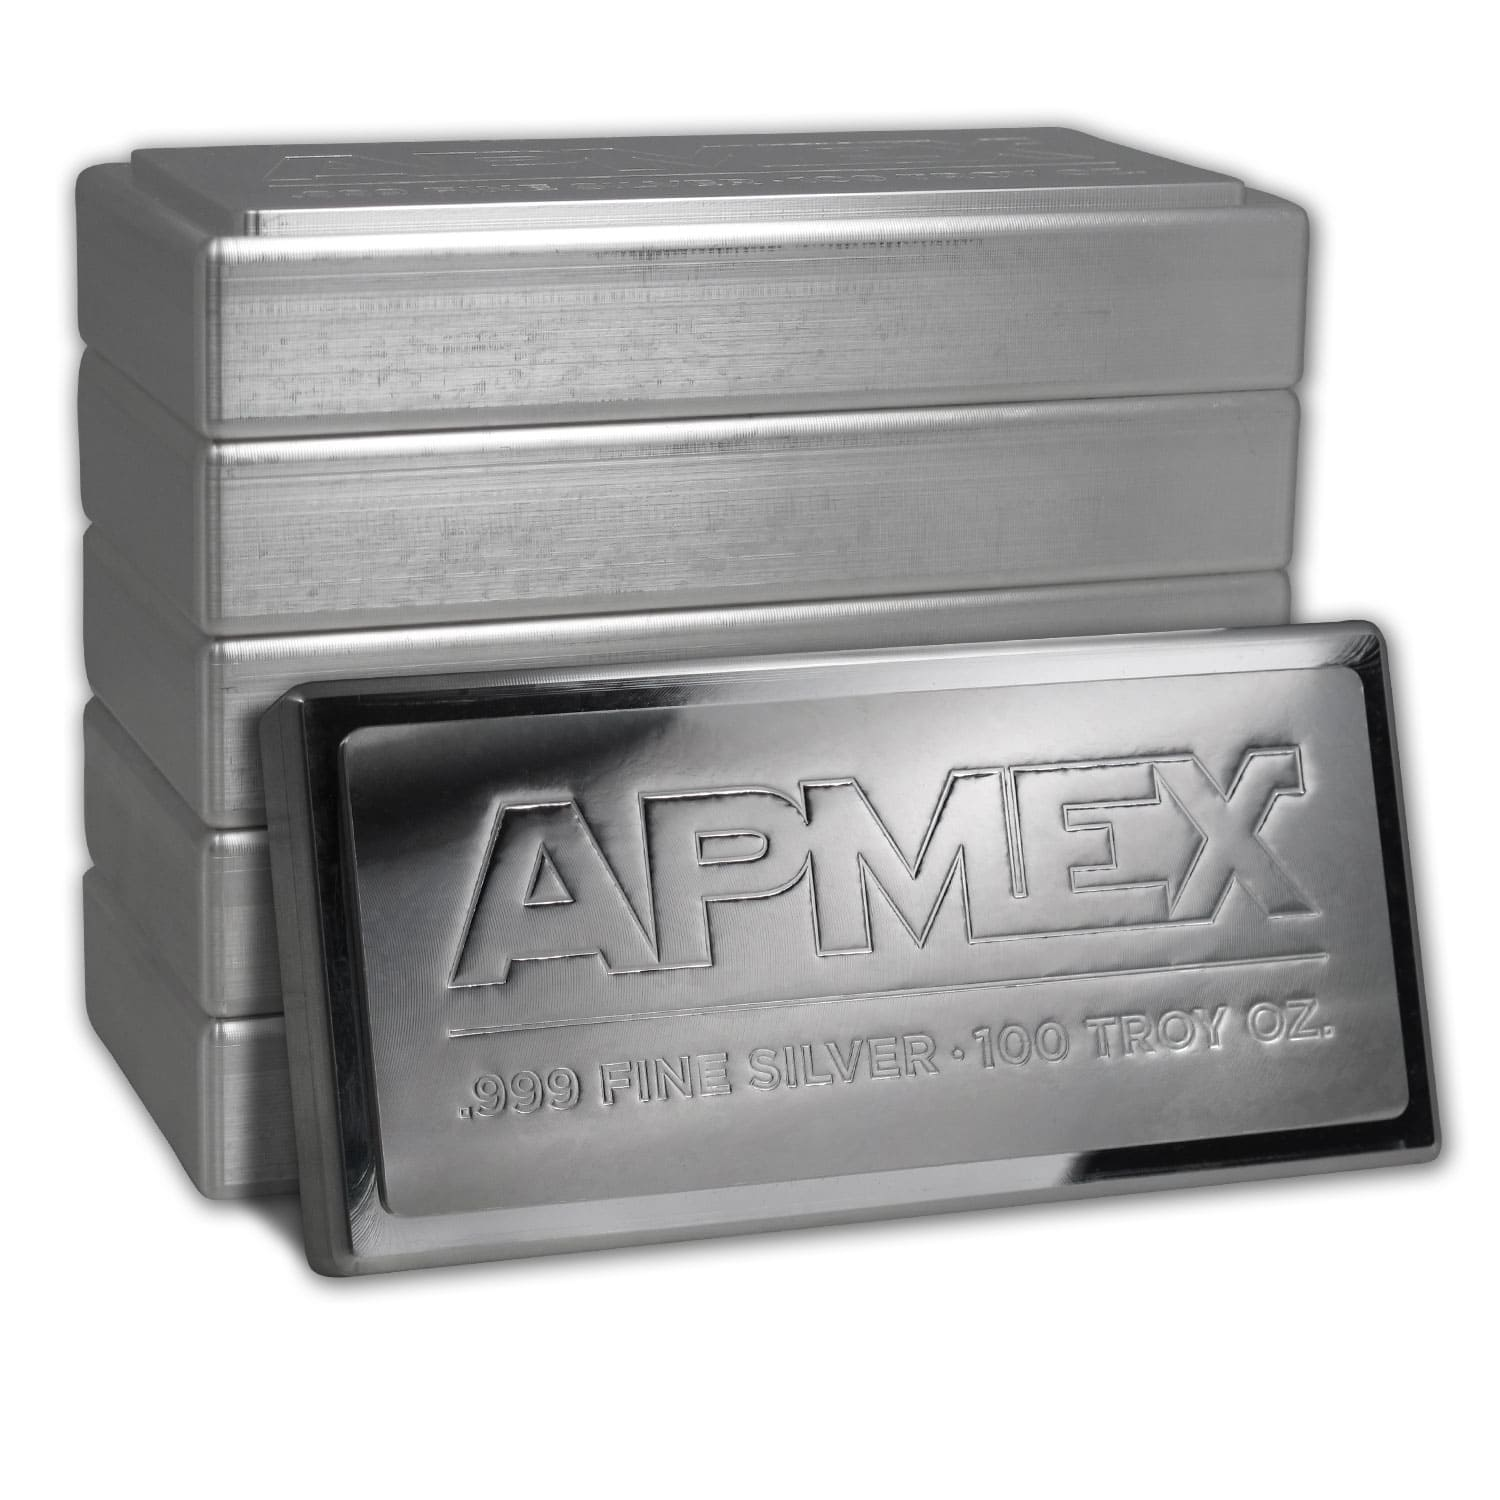 100 oz Silver Bar - APMEX (Stackable/IRA approved)(Jul 31st)